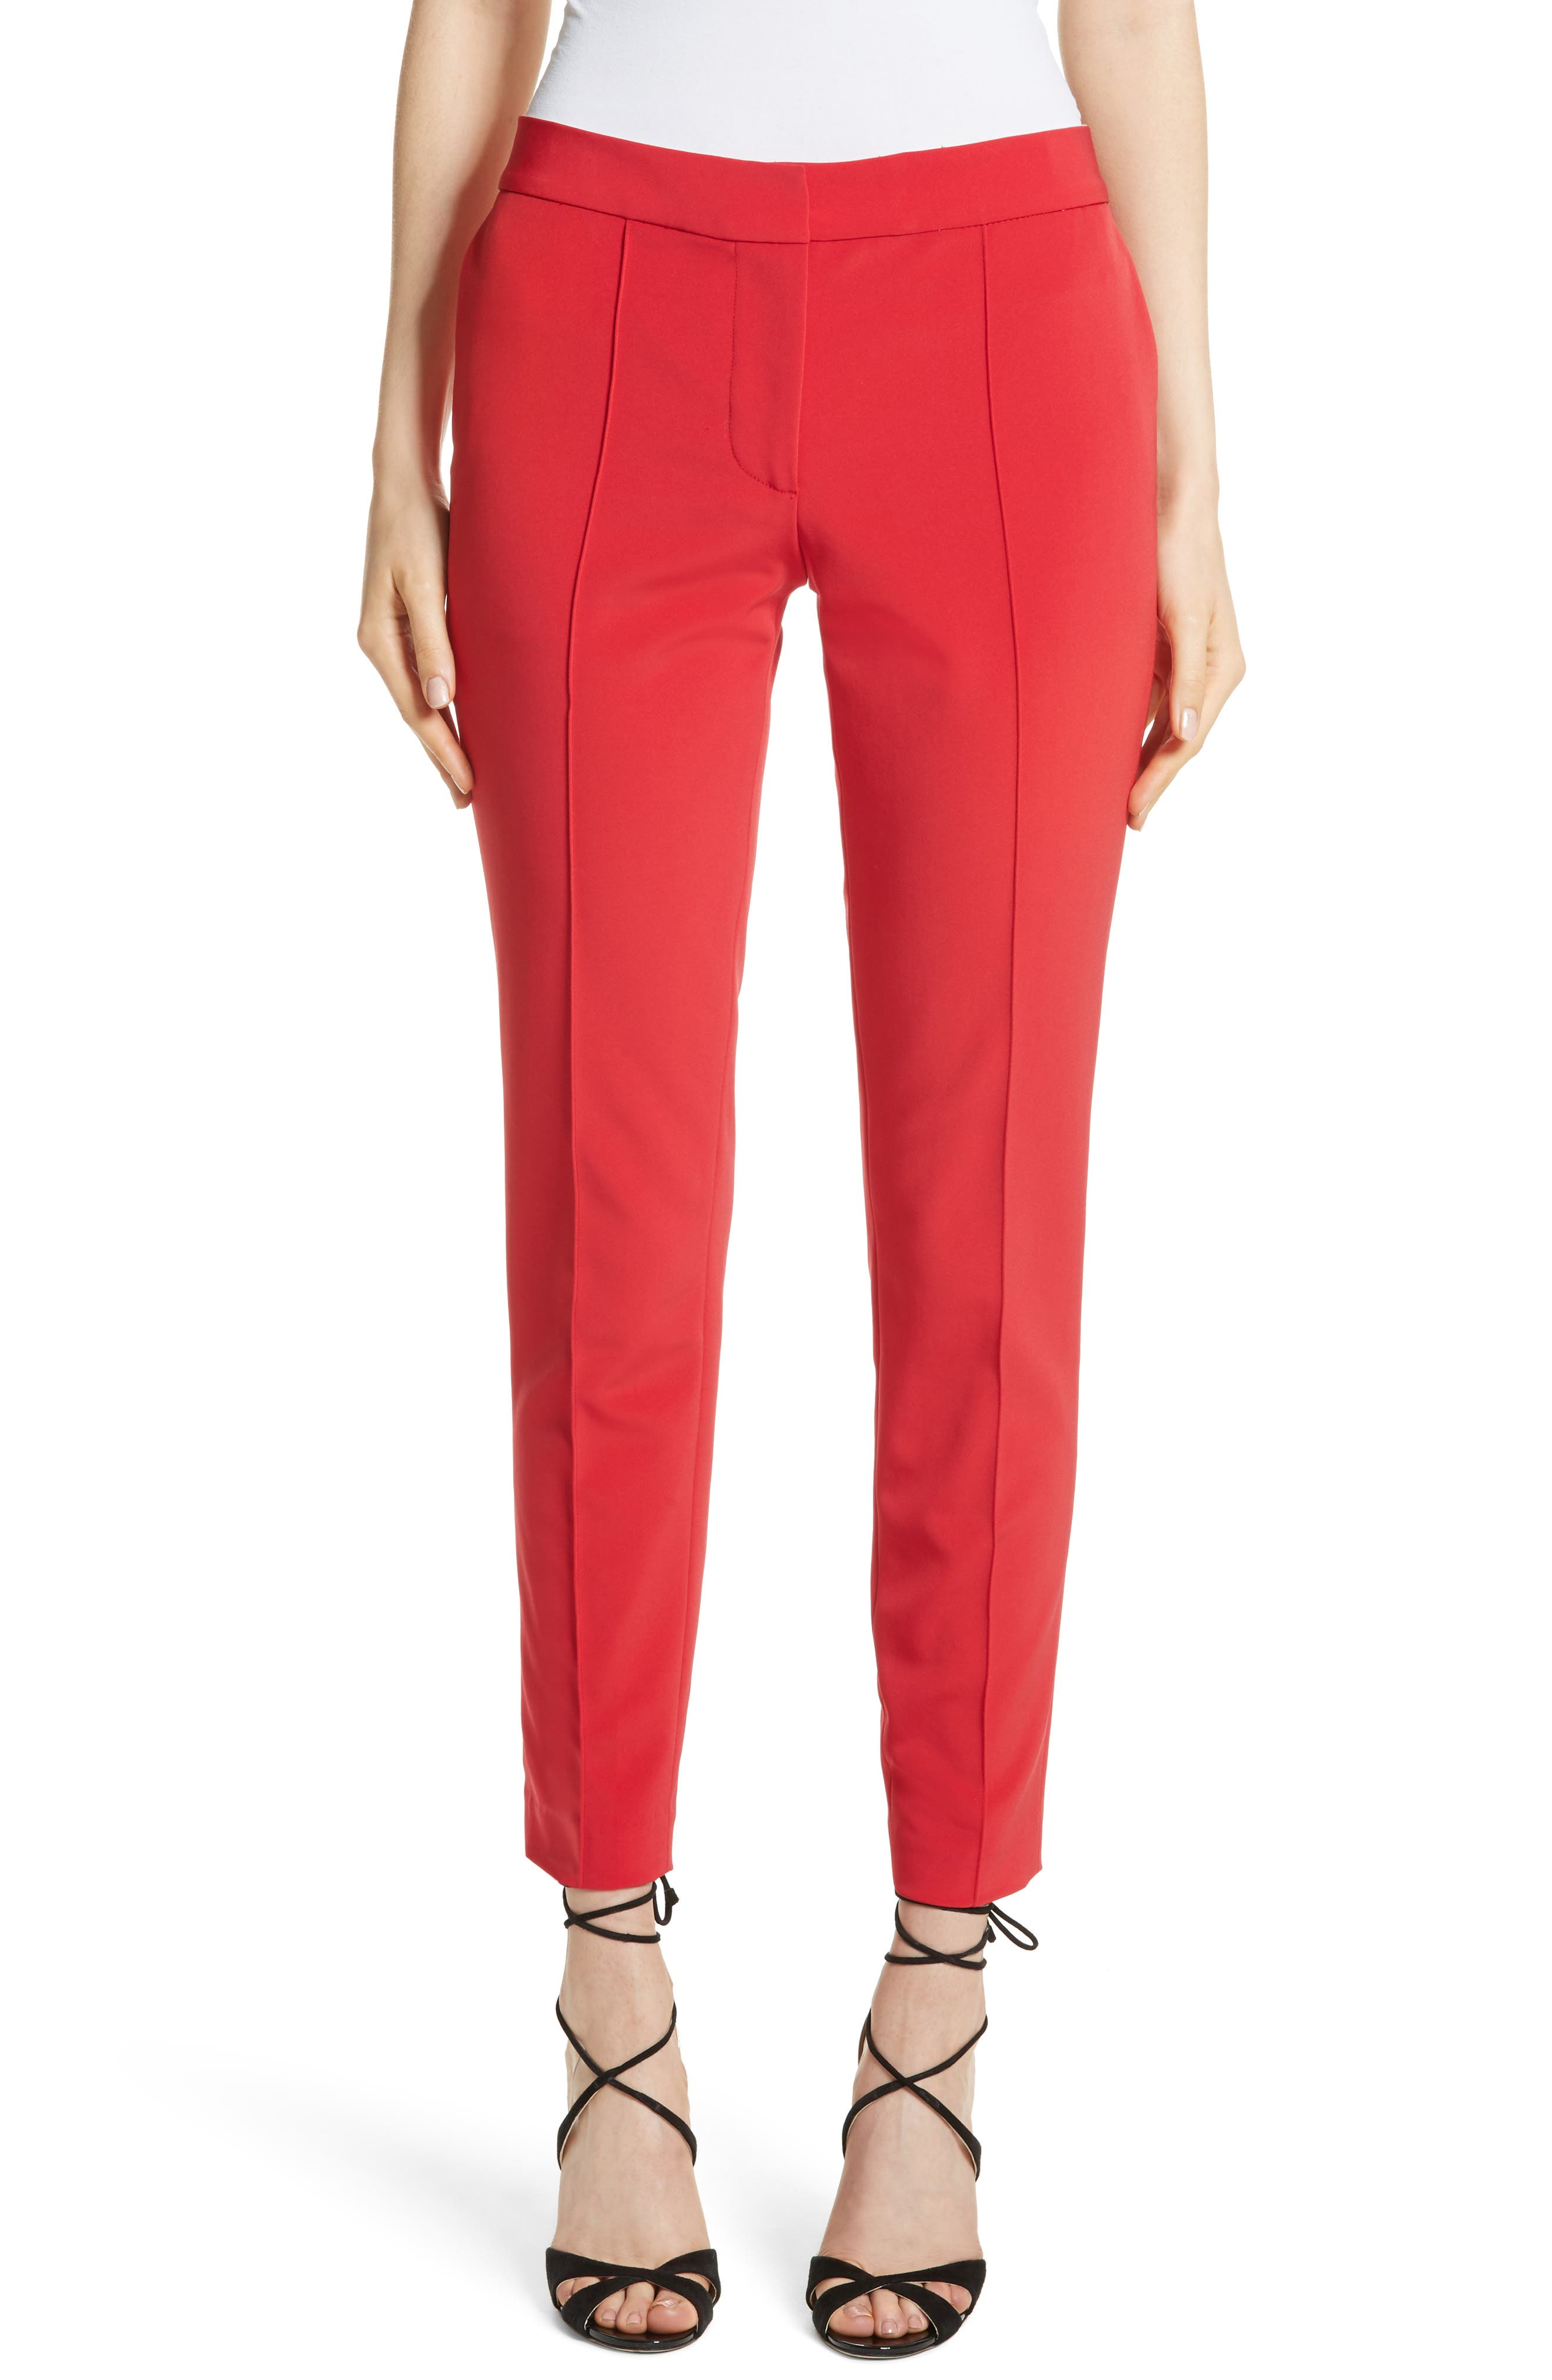 Yigal Azrouël Crop Bi-Stretch Pants